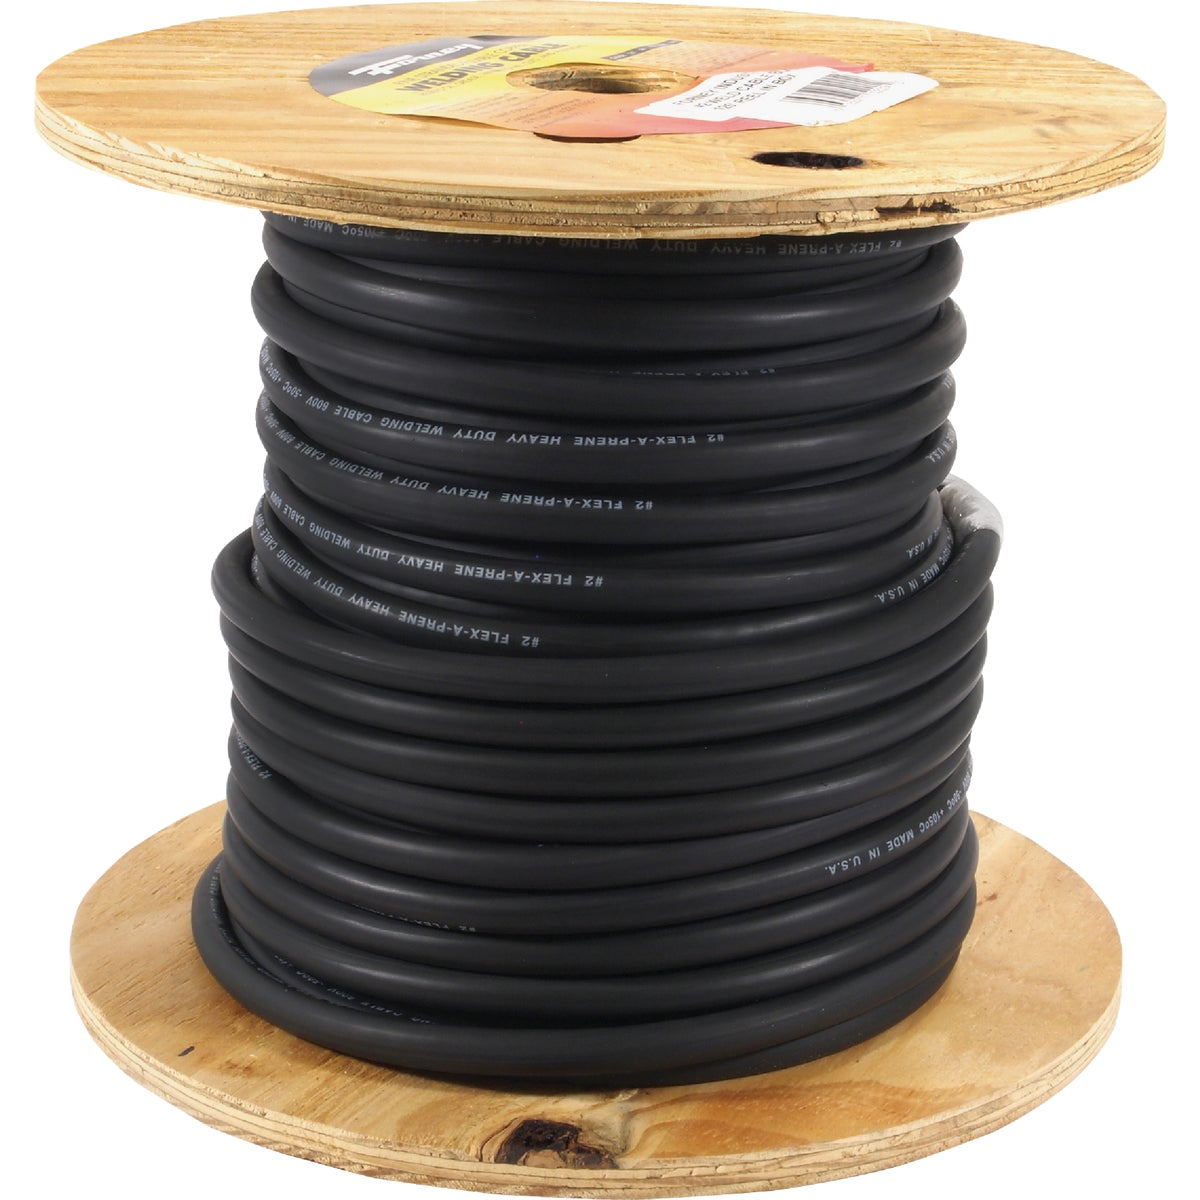 125' #2 WELDING CABLE - 52024 by Forney Industries